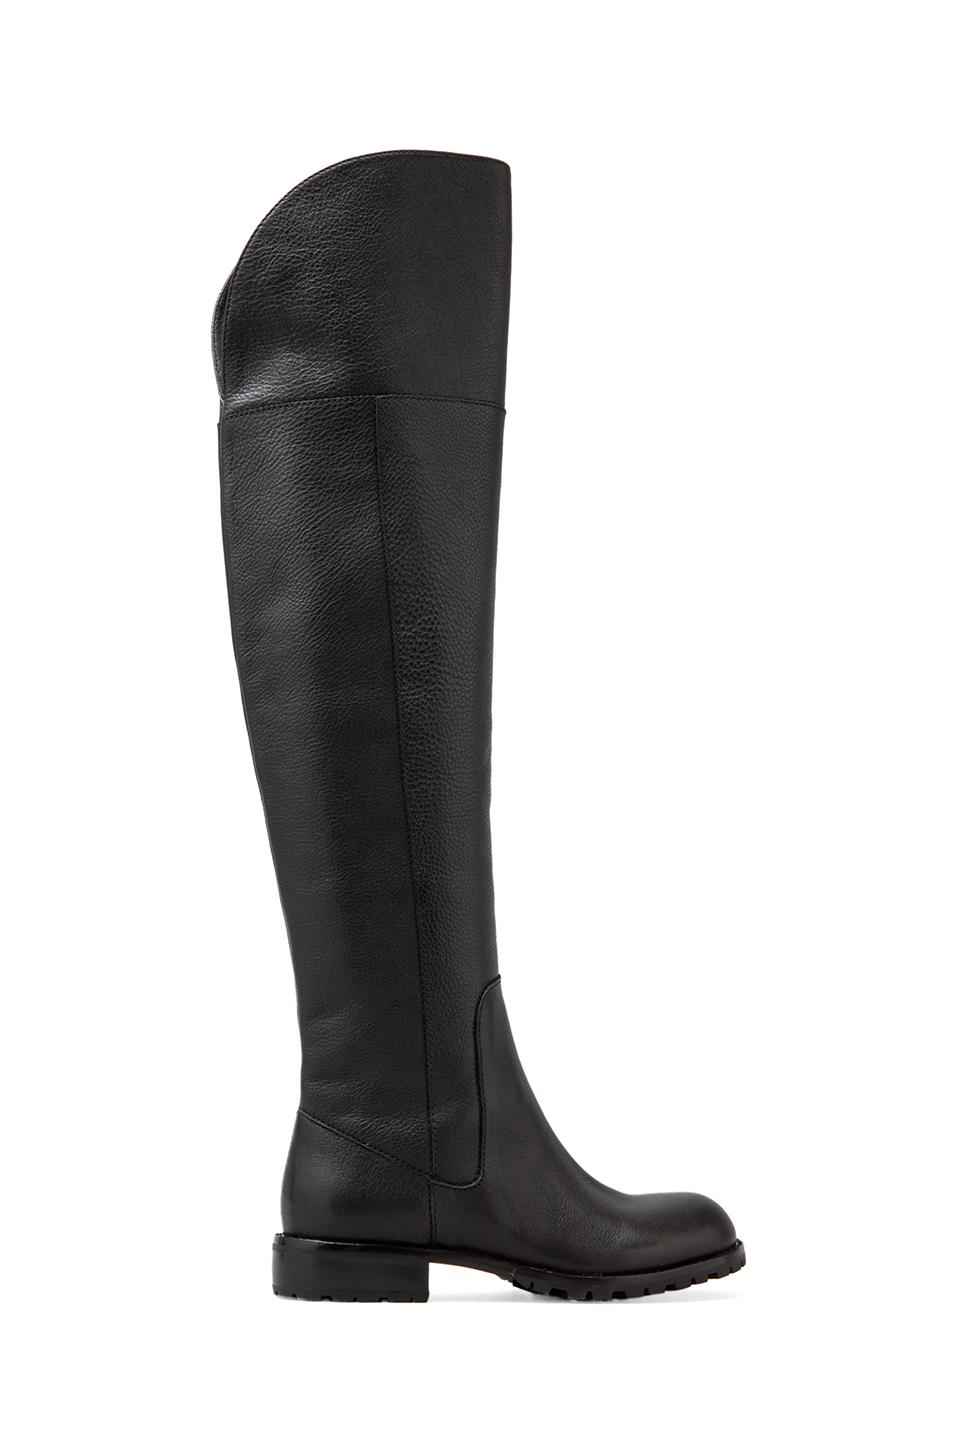 Marc by Marc Jacobs Easy Rider 30mm Over The Knee Boot in Black